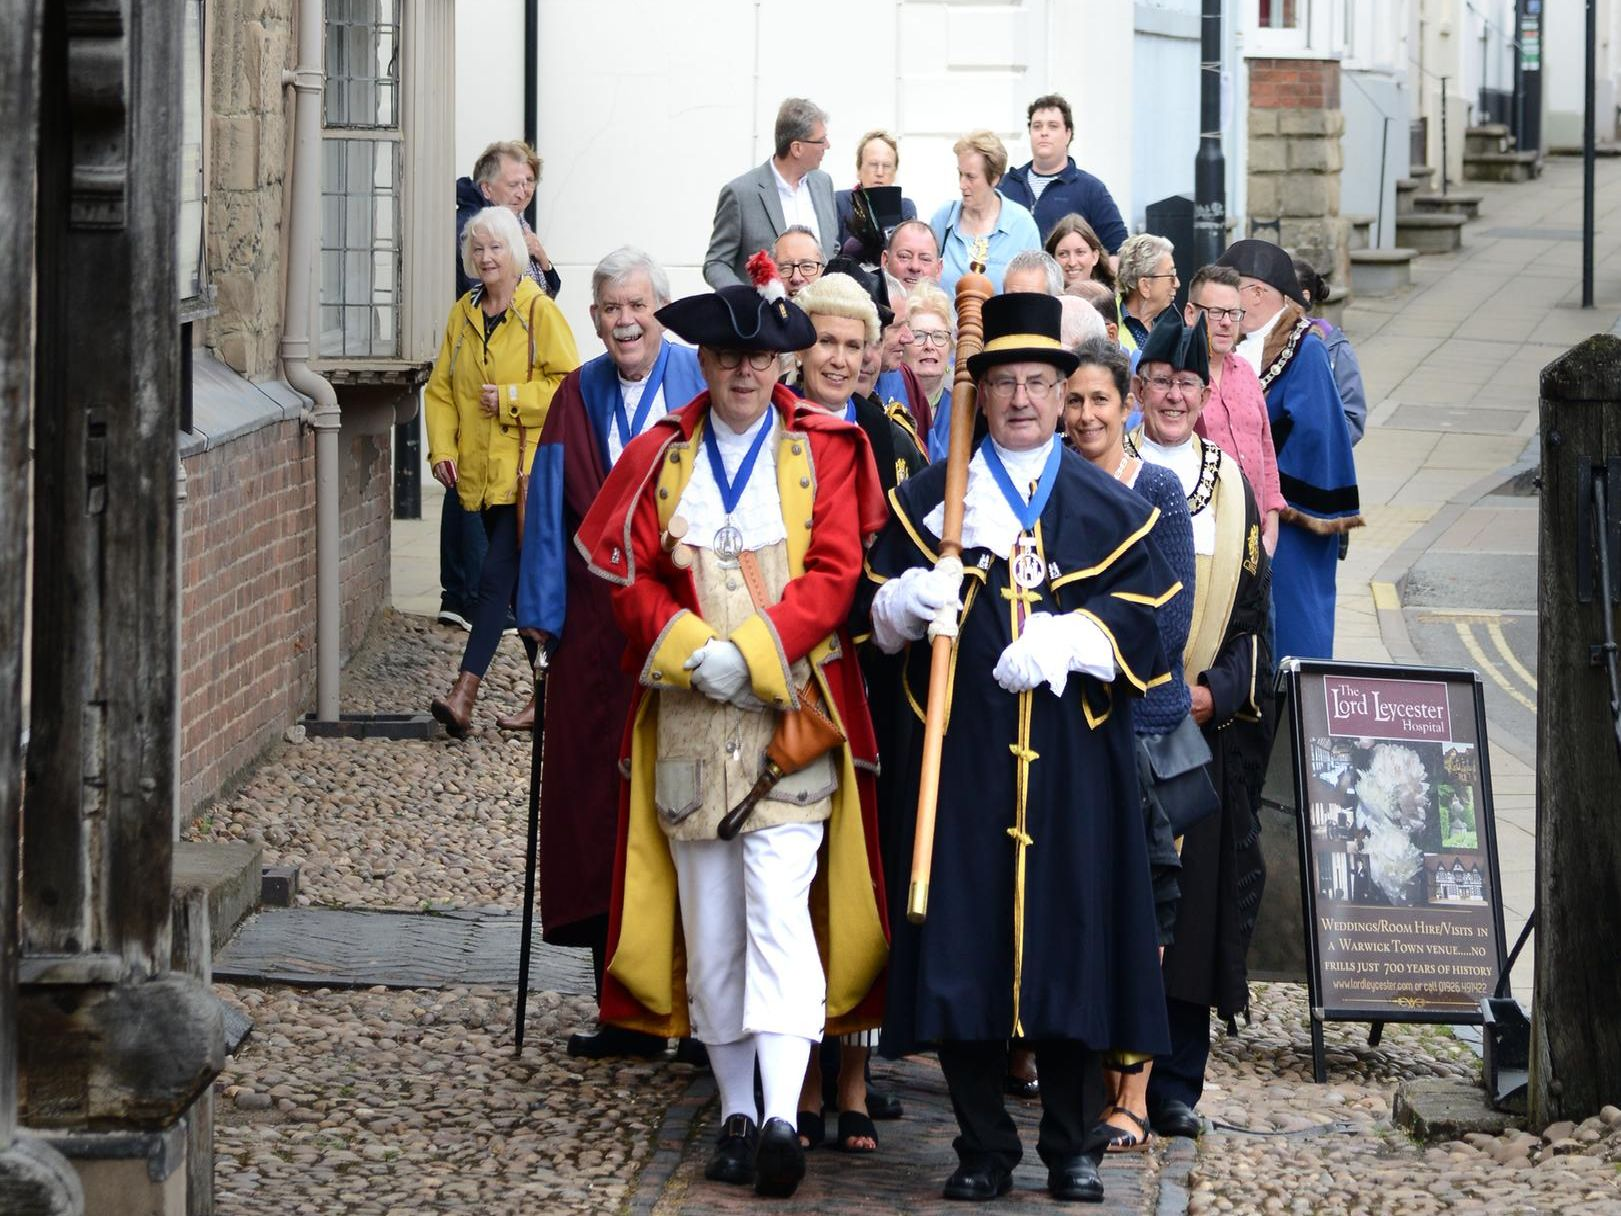 Warwick Court Leet's Assizes Day 2019. Photo by Gill Fletcher